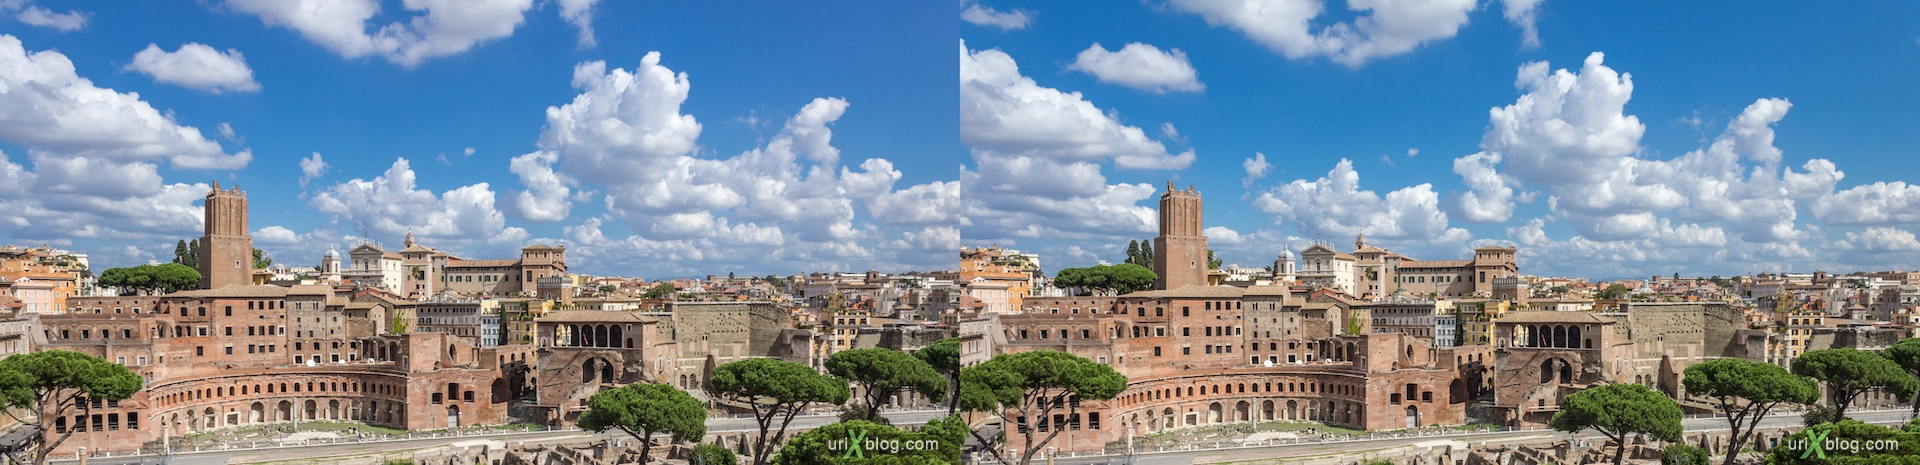 2012, форум Траяна, Roman Forum, Palatine Hill, Rome, Italy, ancient rome, city, 3D, stereo pair, cross-eyed, crossview, cross view stereo pair